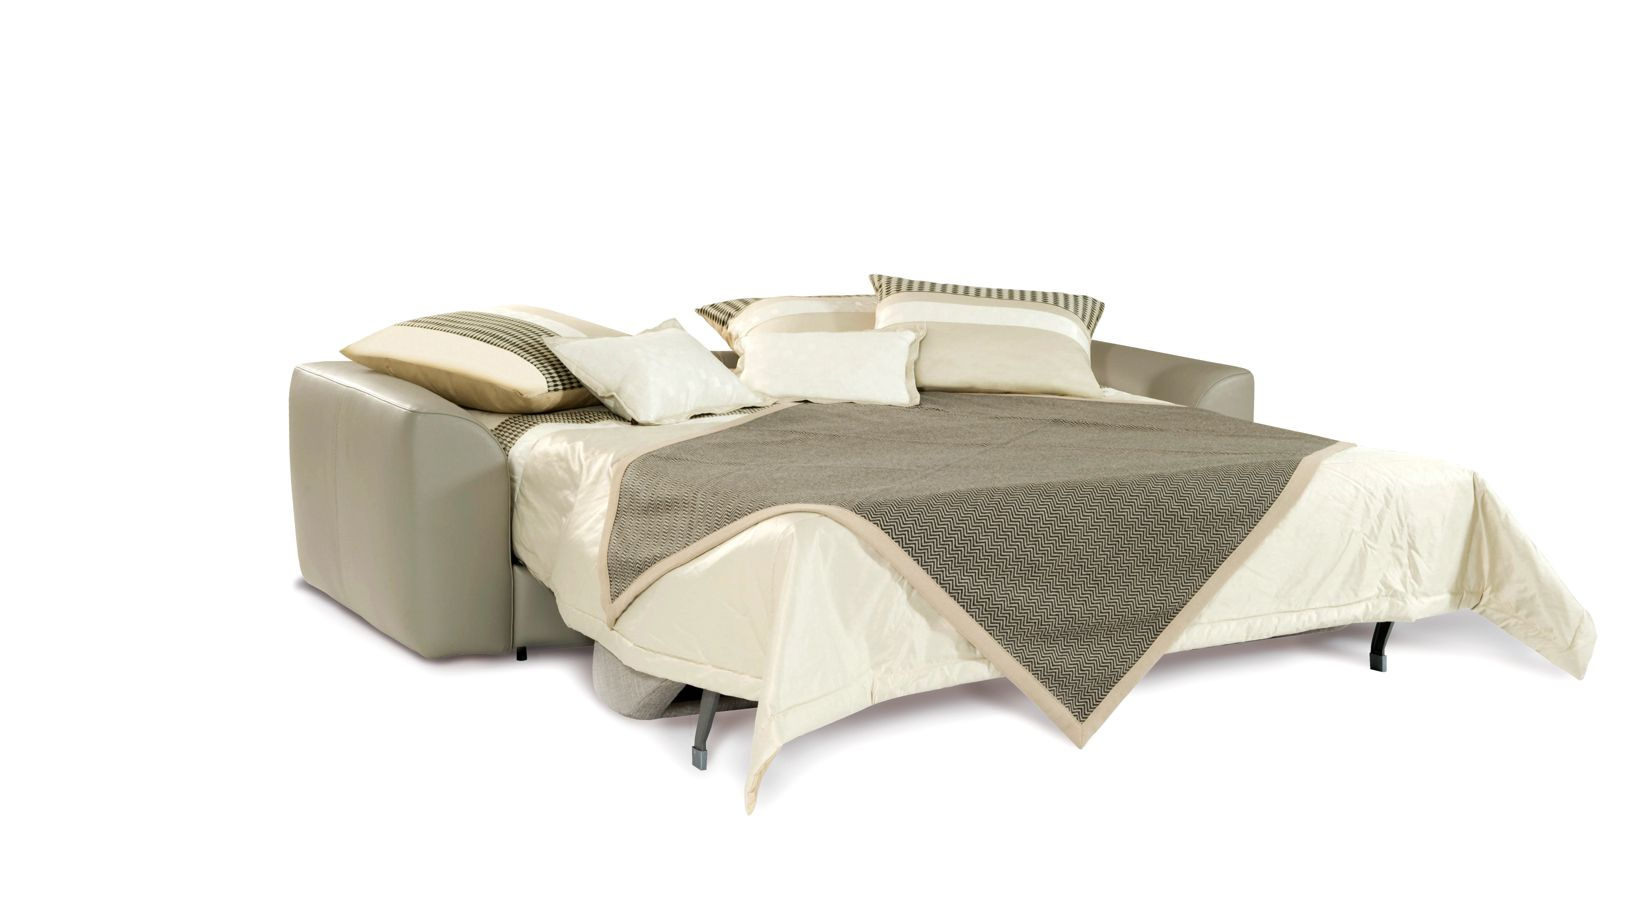 Grand canape convertible 3 places nocturnes roche bobois for Canape lit convertible roche bobois